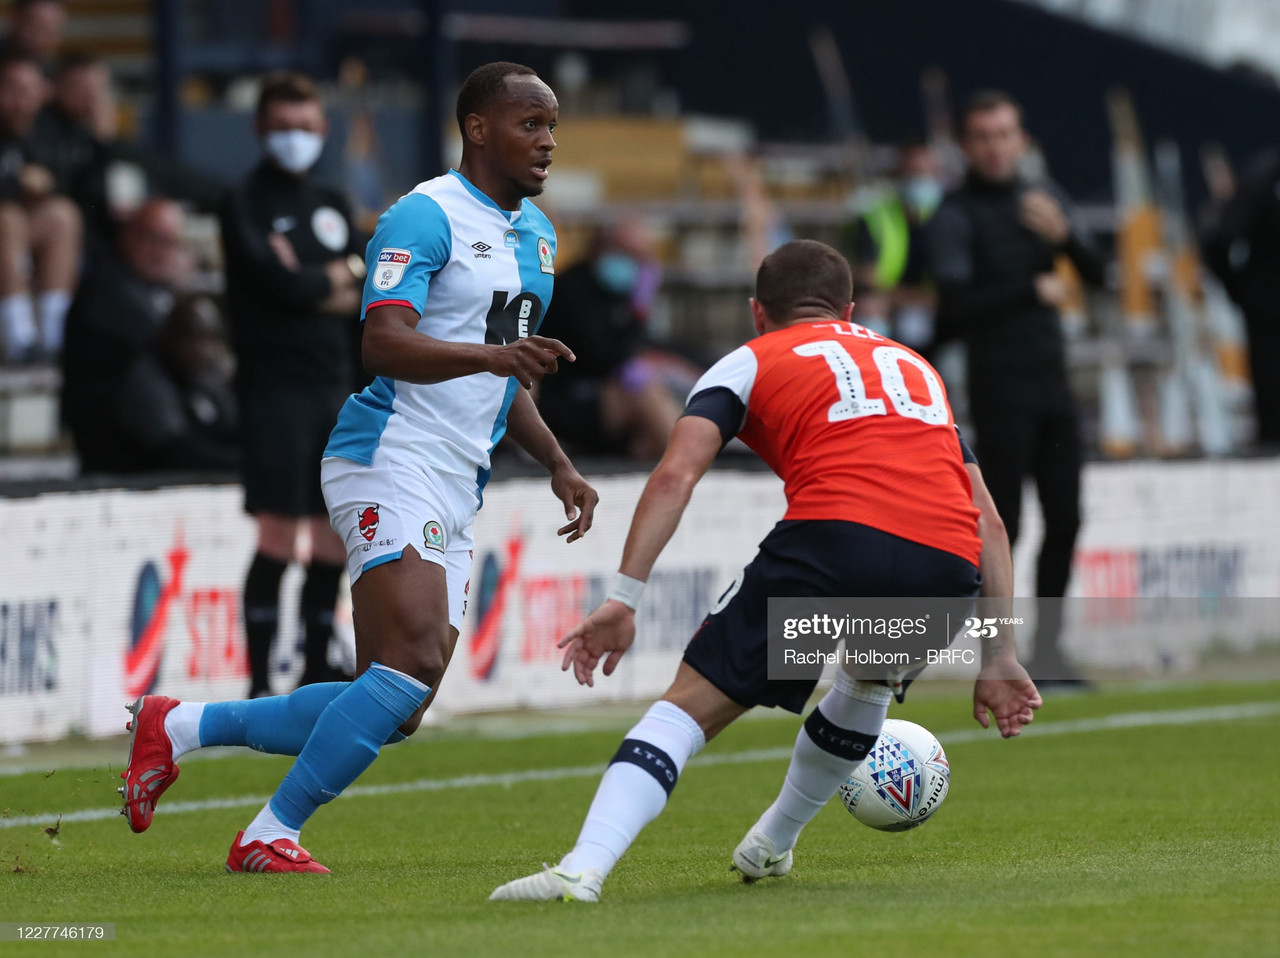 Luton Town 1-1 Blackburn Rovers: Hatters hold Blackburn to an action-packed draw at Kenilworth Road